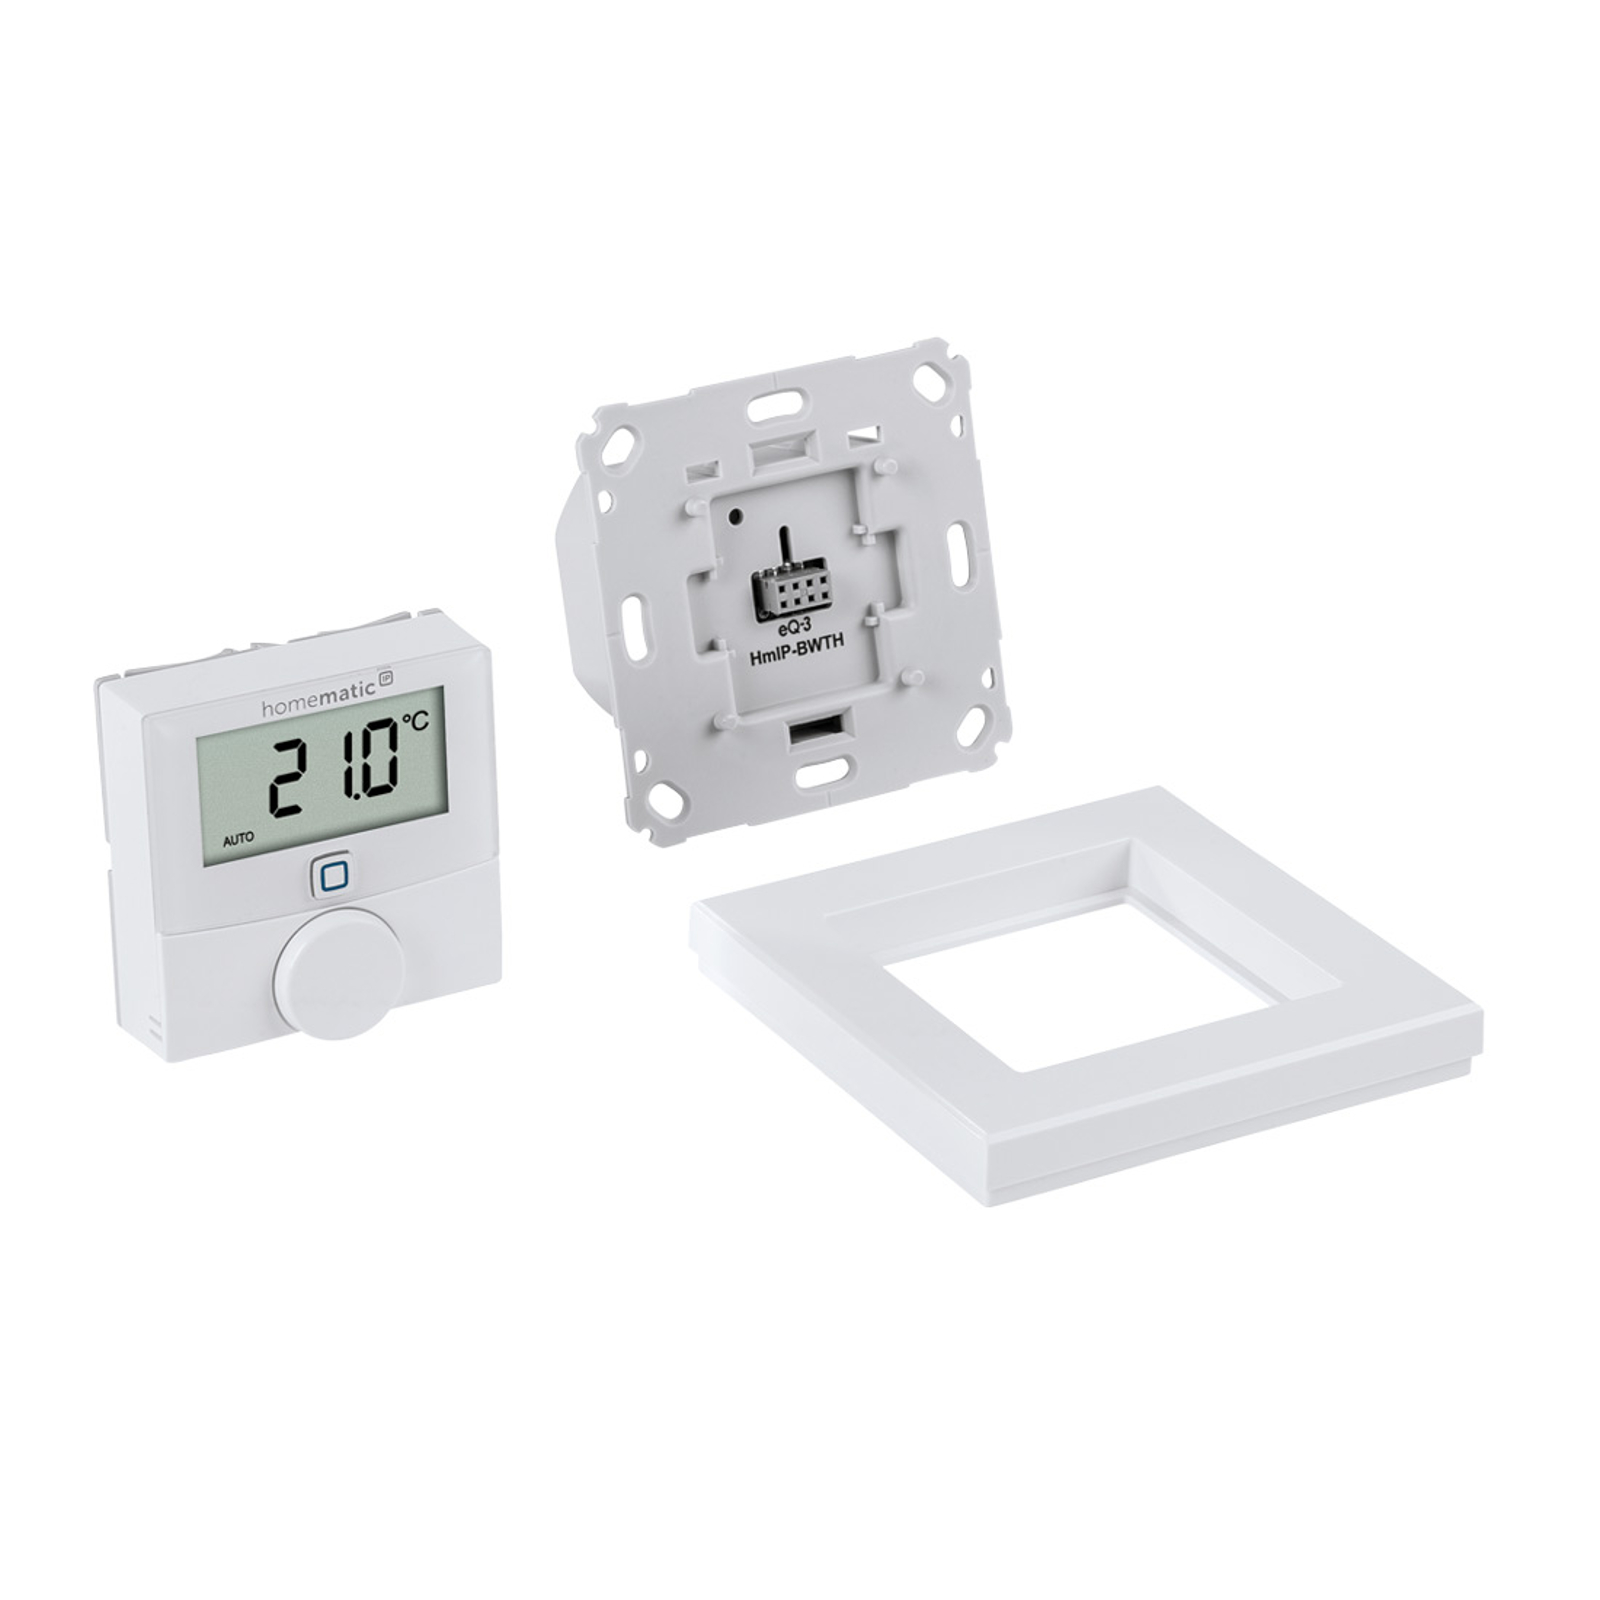 Homematic IP thermostat mural, 230 V